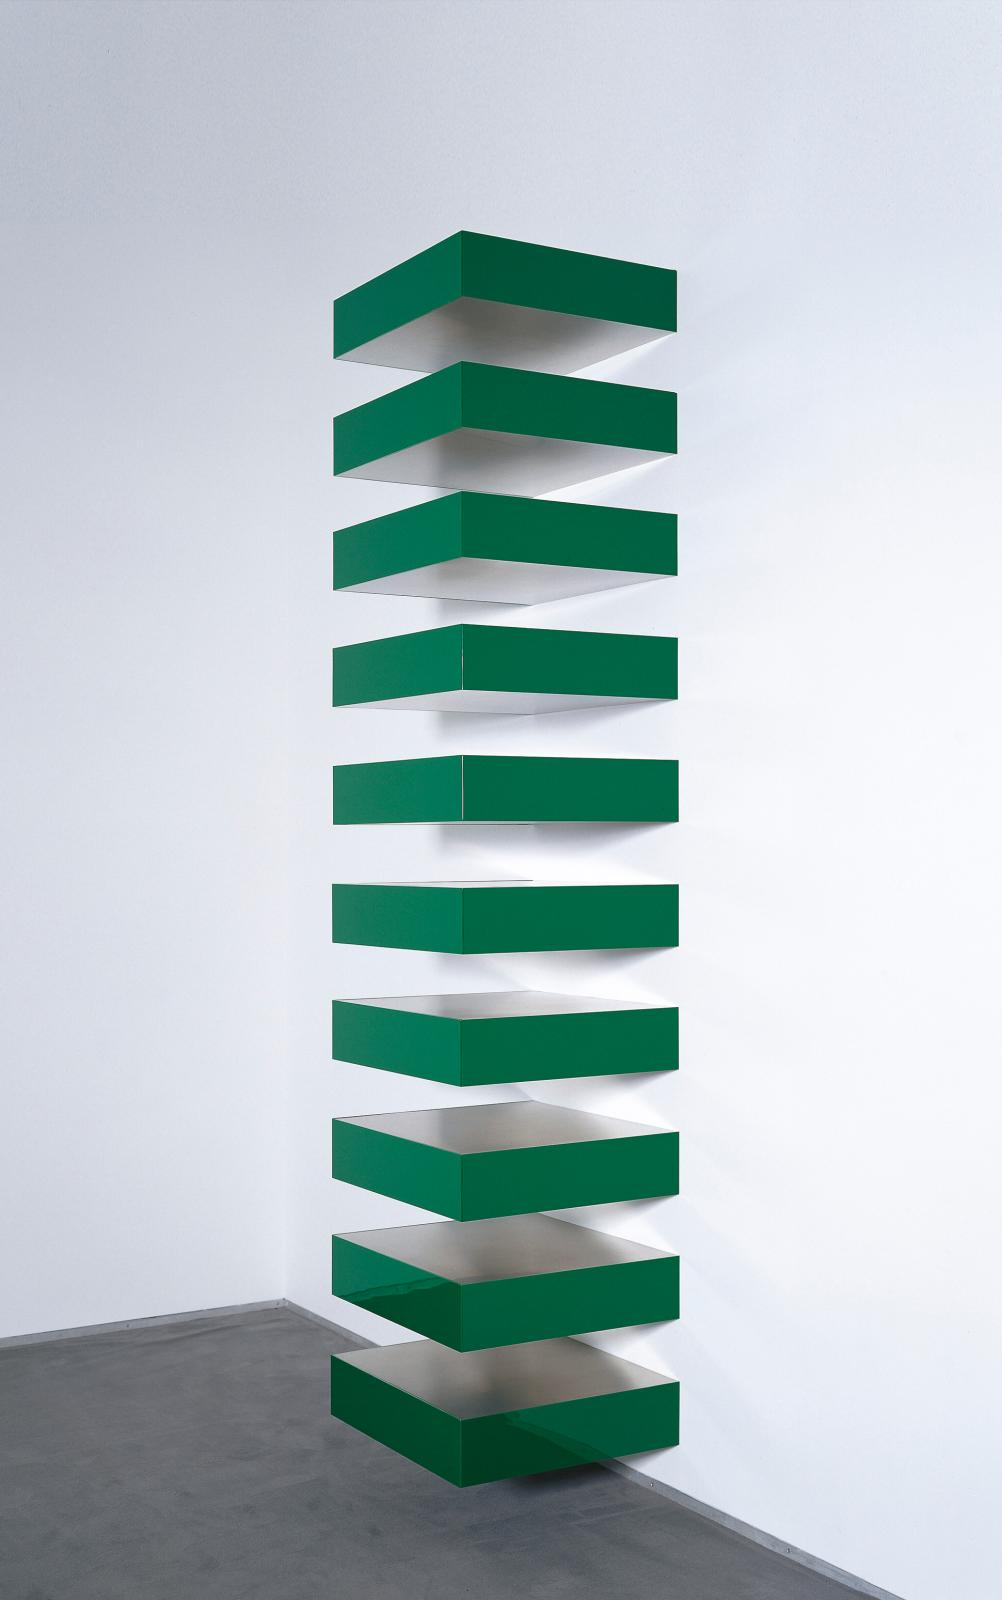 "Donald Judd (1928-1994), ""Untitled"", 1970, stainless steel and Plexiglass, ten parts, each: 15.2 x 68.6 x 61 cm."